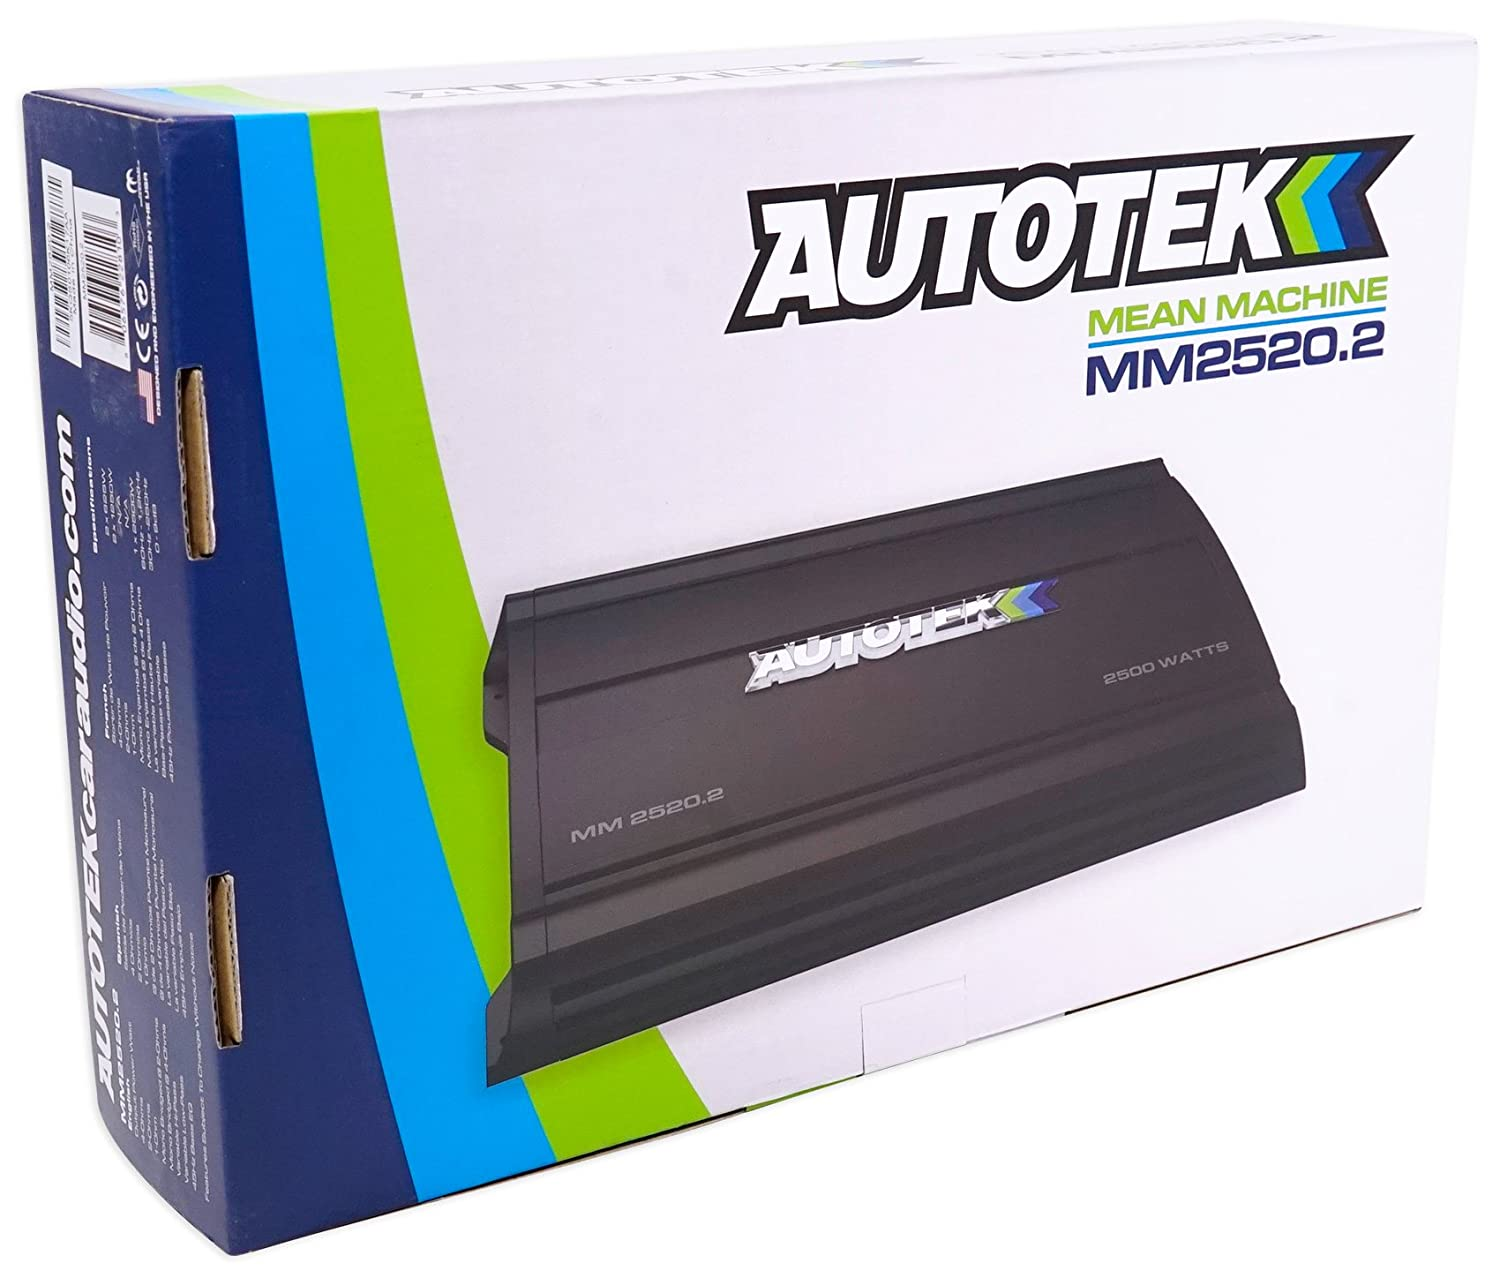 Autoradio's, hifi, video, GPS AUTOTEK MM2520 2 Mean Machine